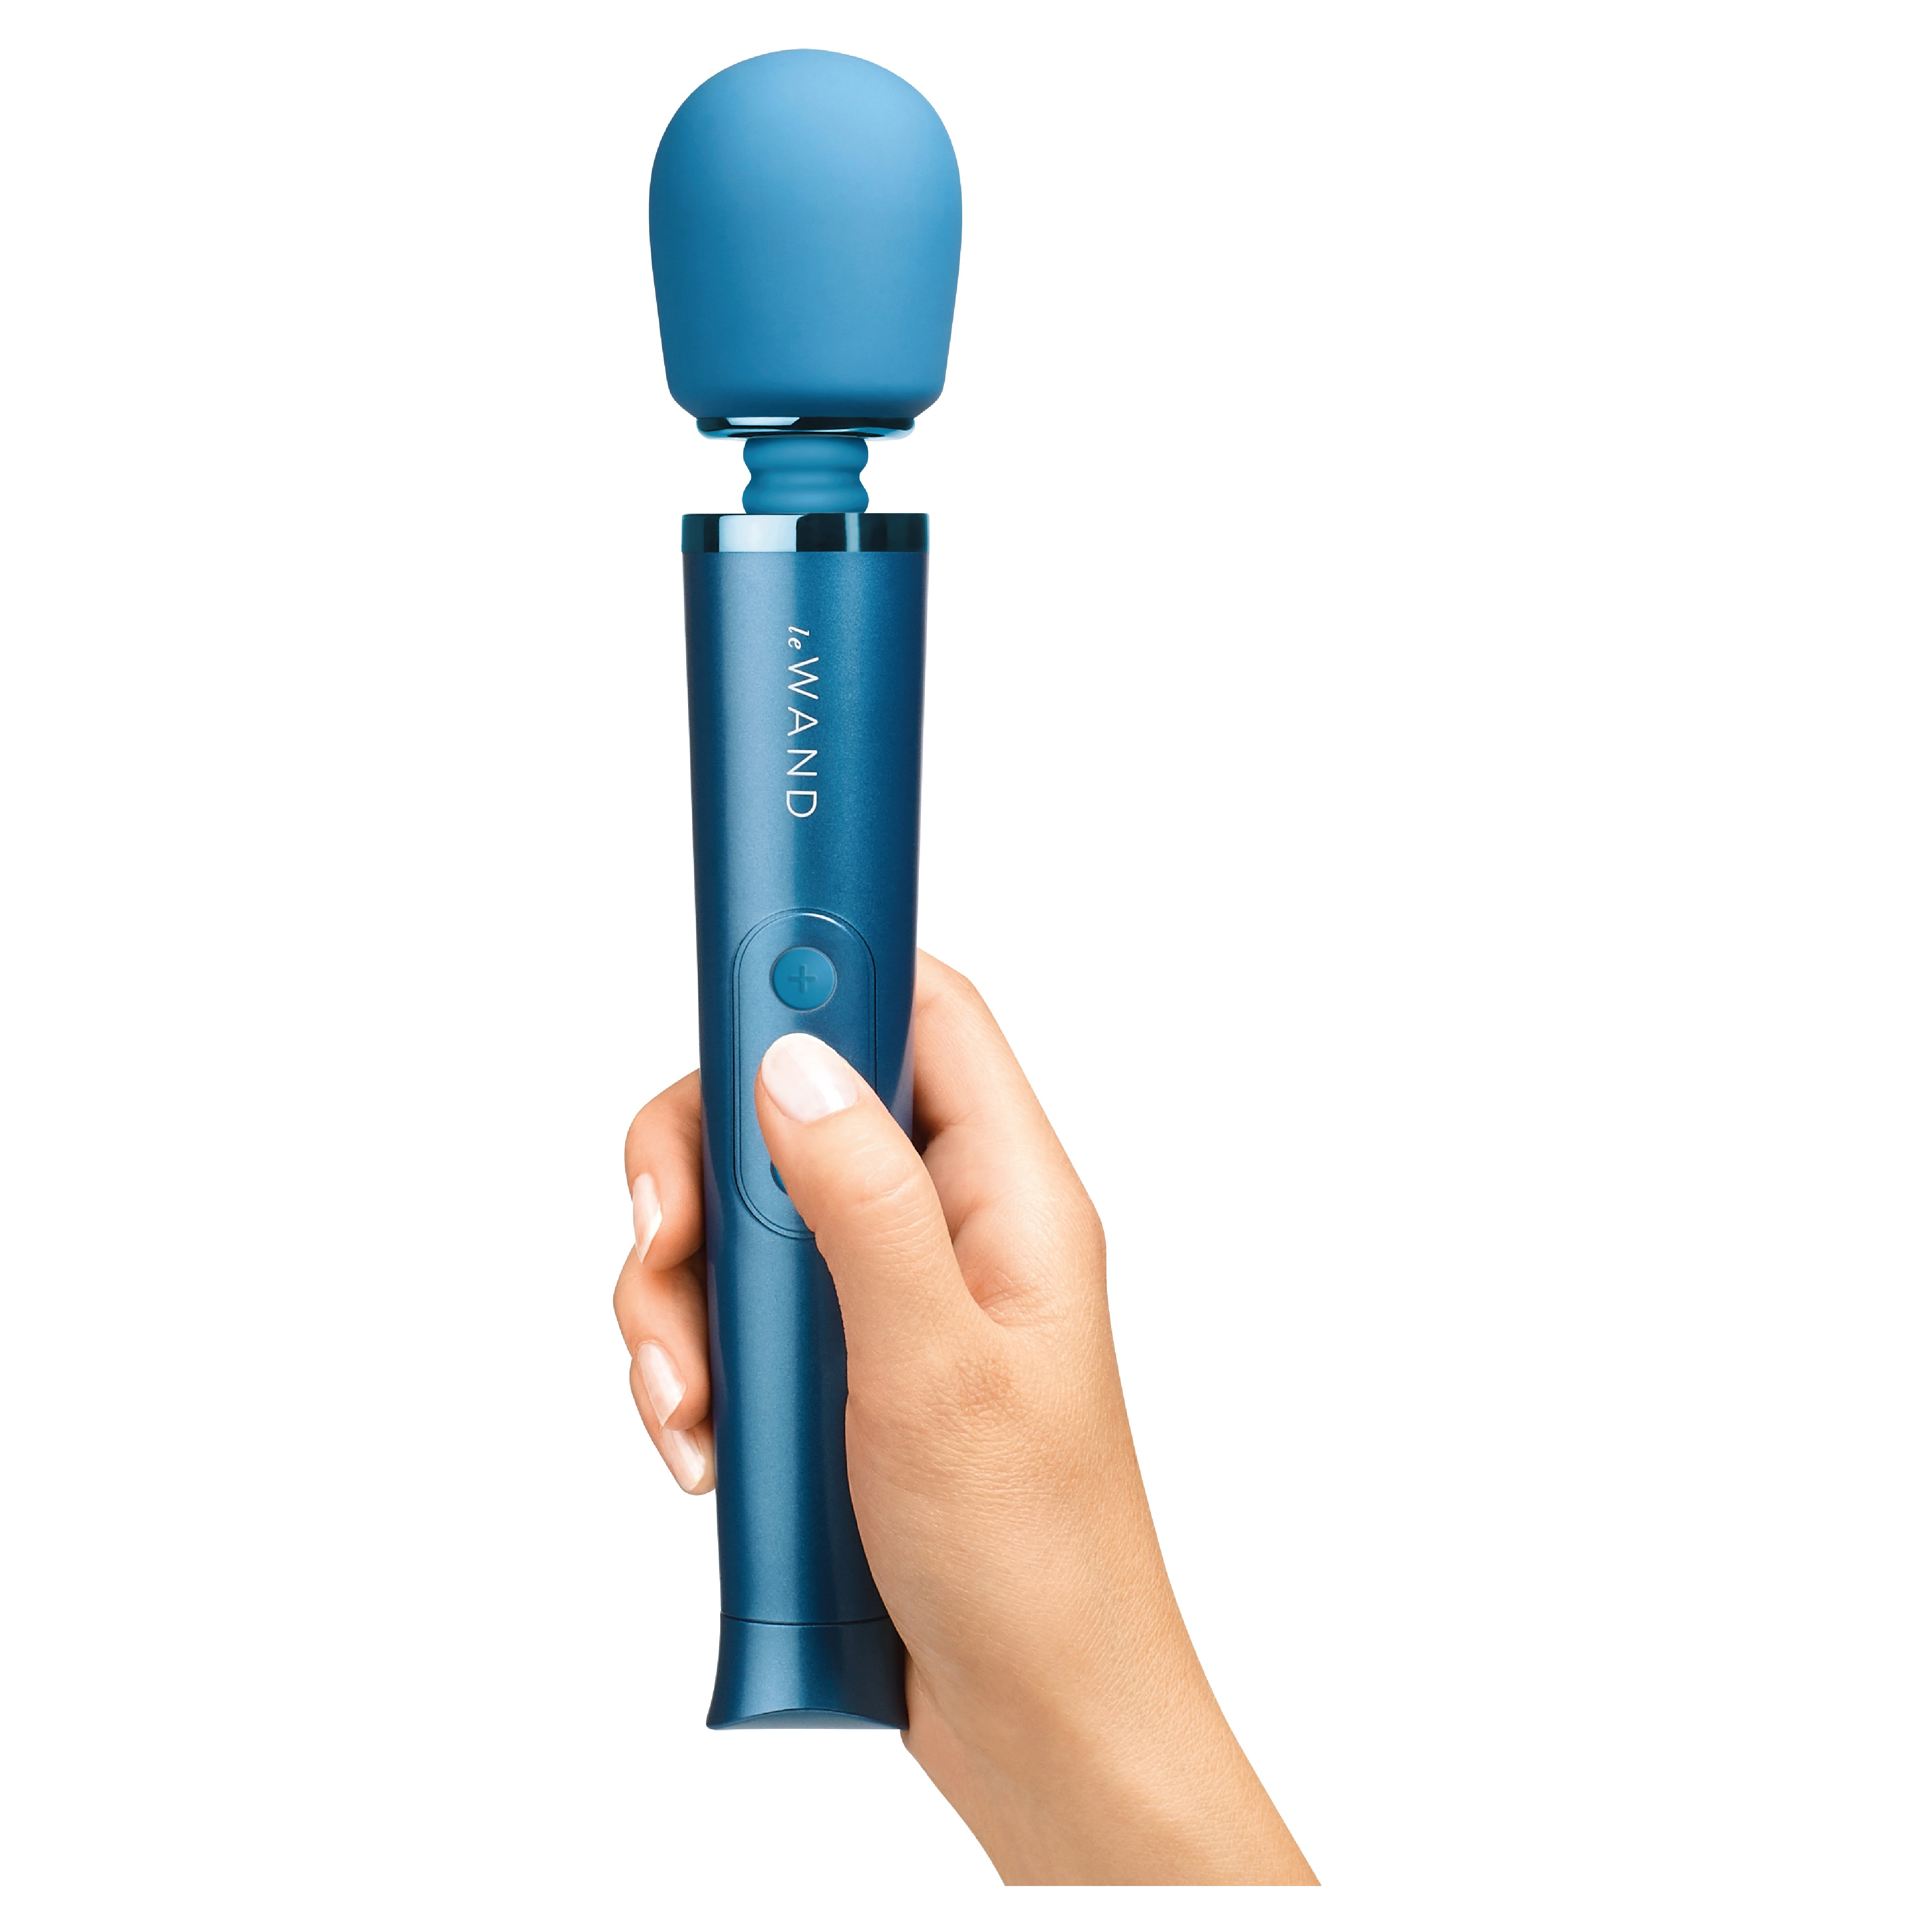 Le-Wand Petite Rechargeable Massager Blue1